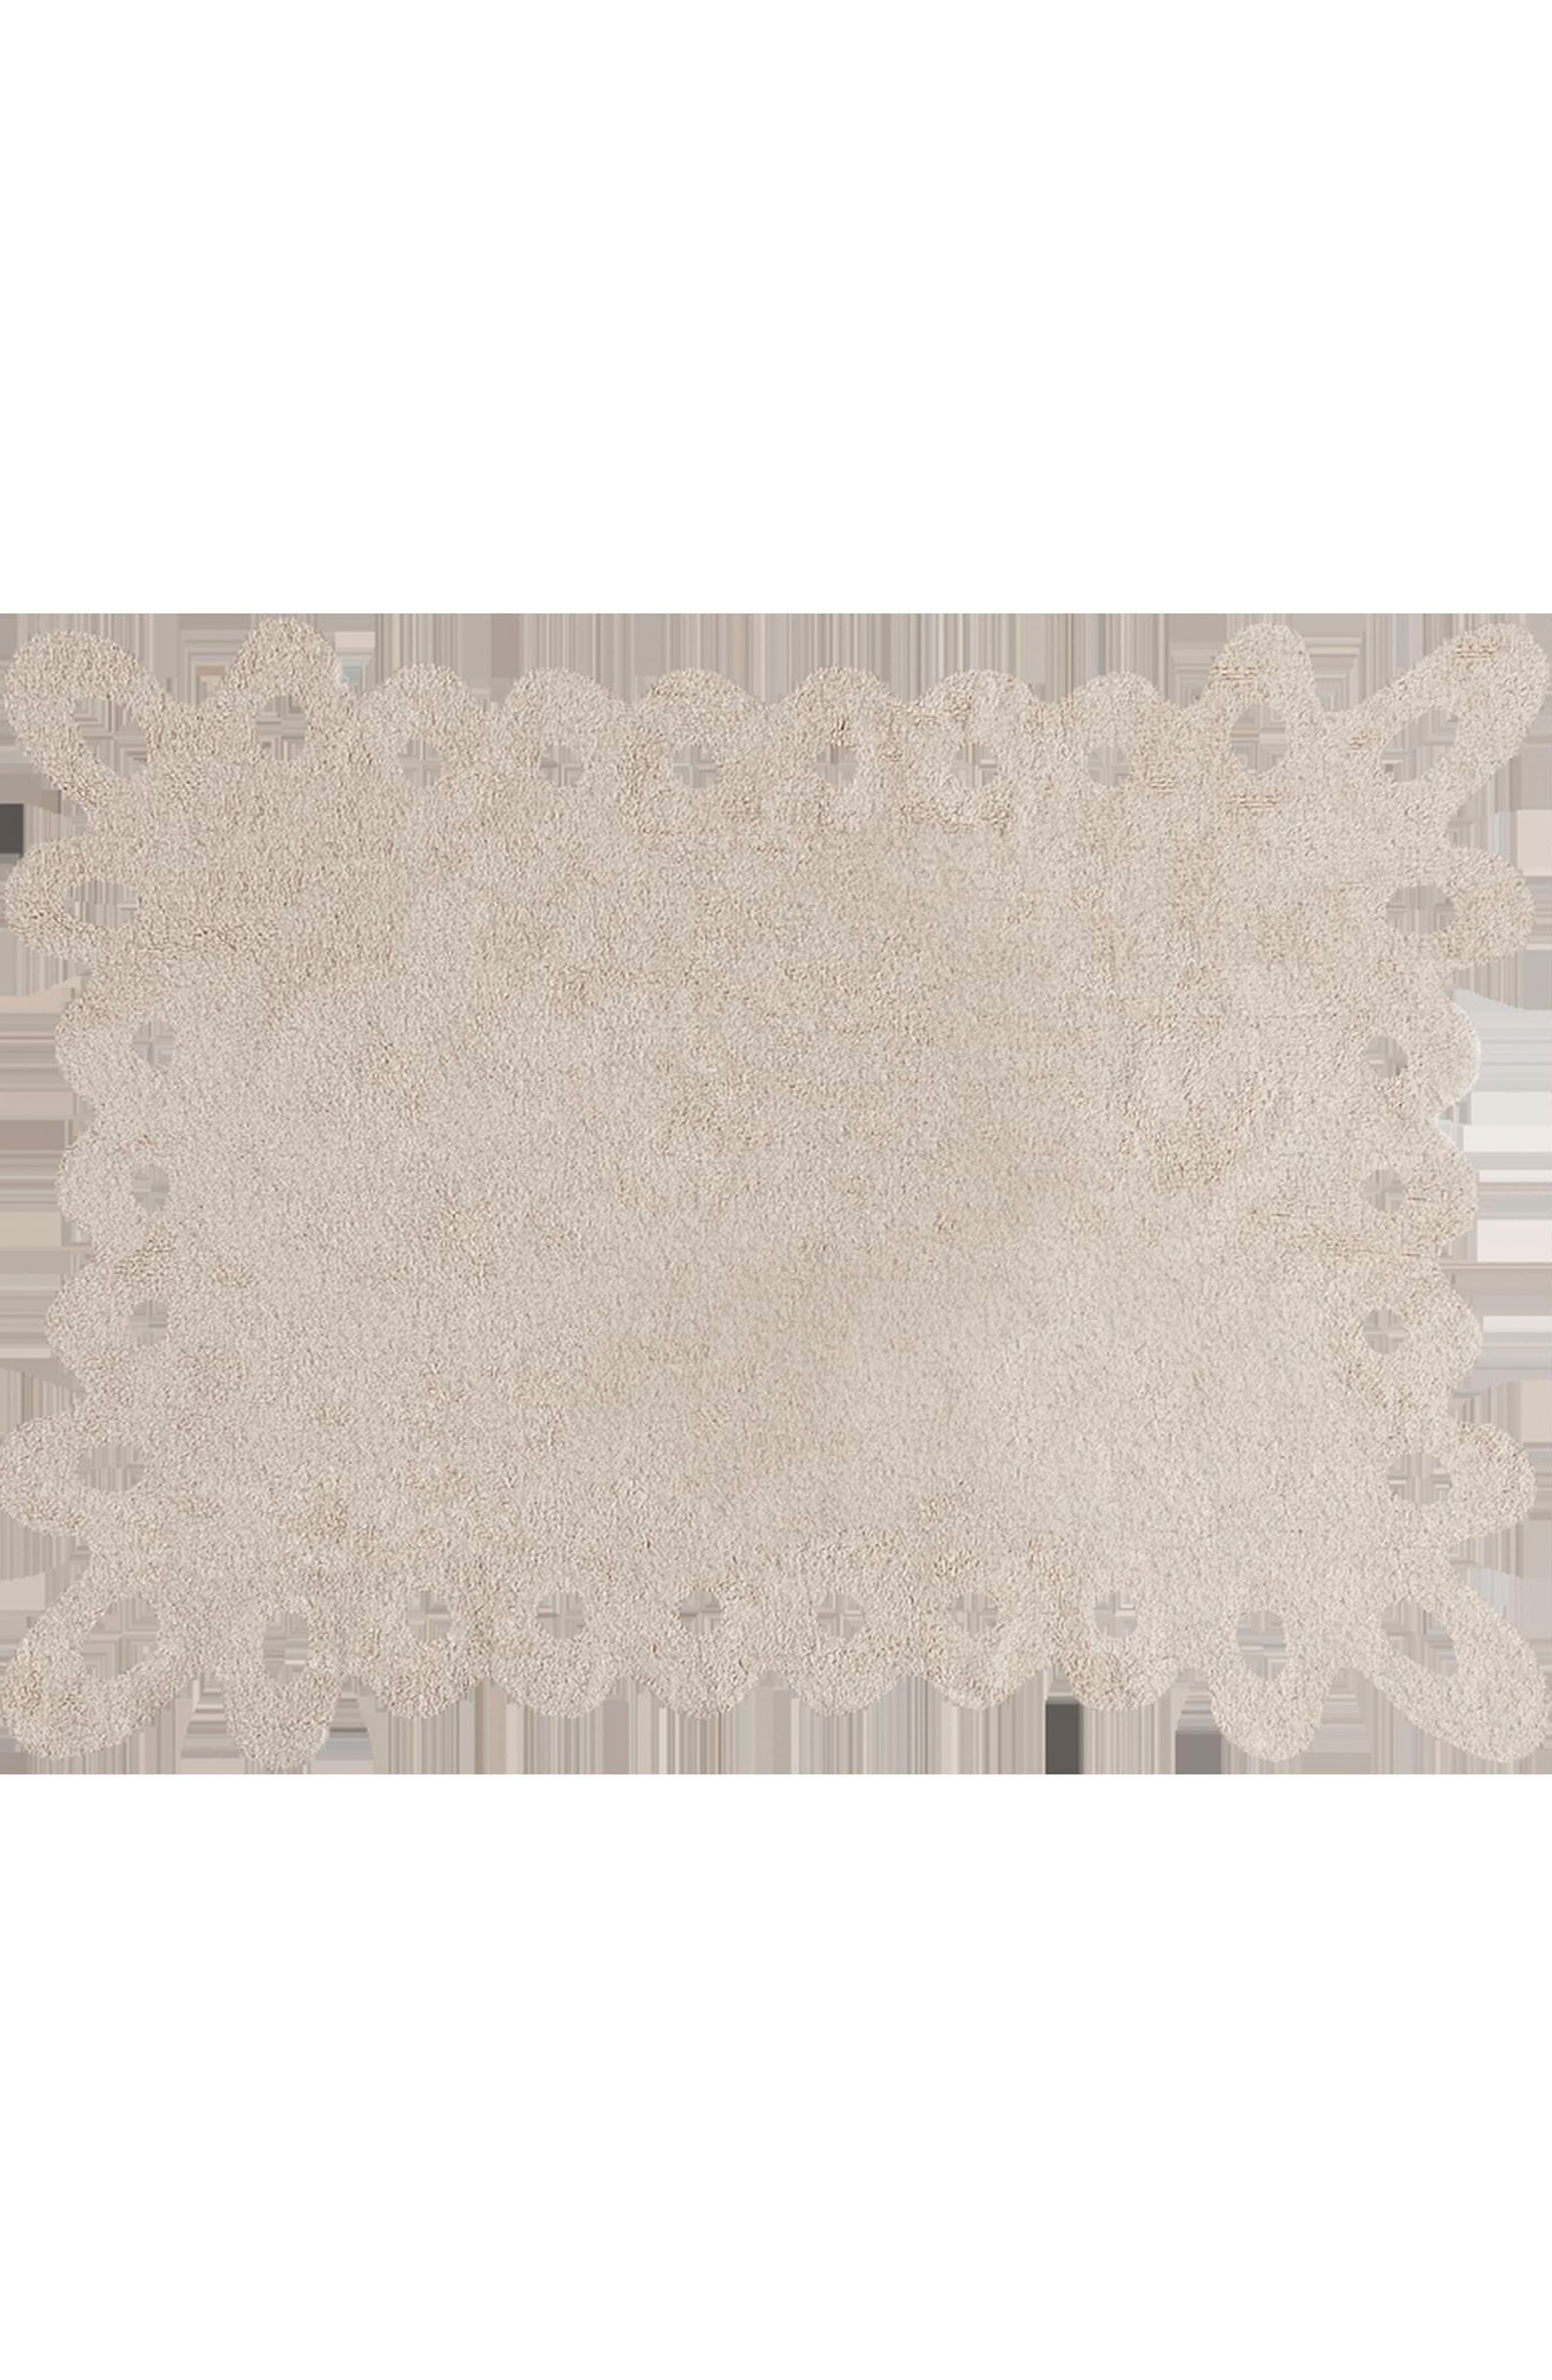 Alternate Image 1 Selected - Lorena Canals Lace Rug